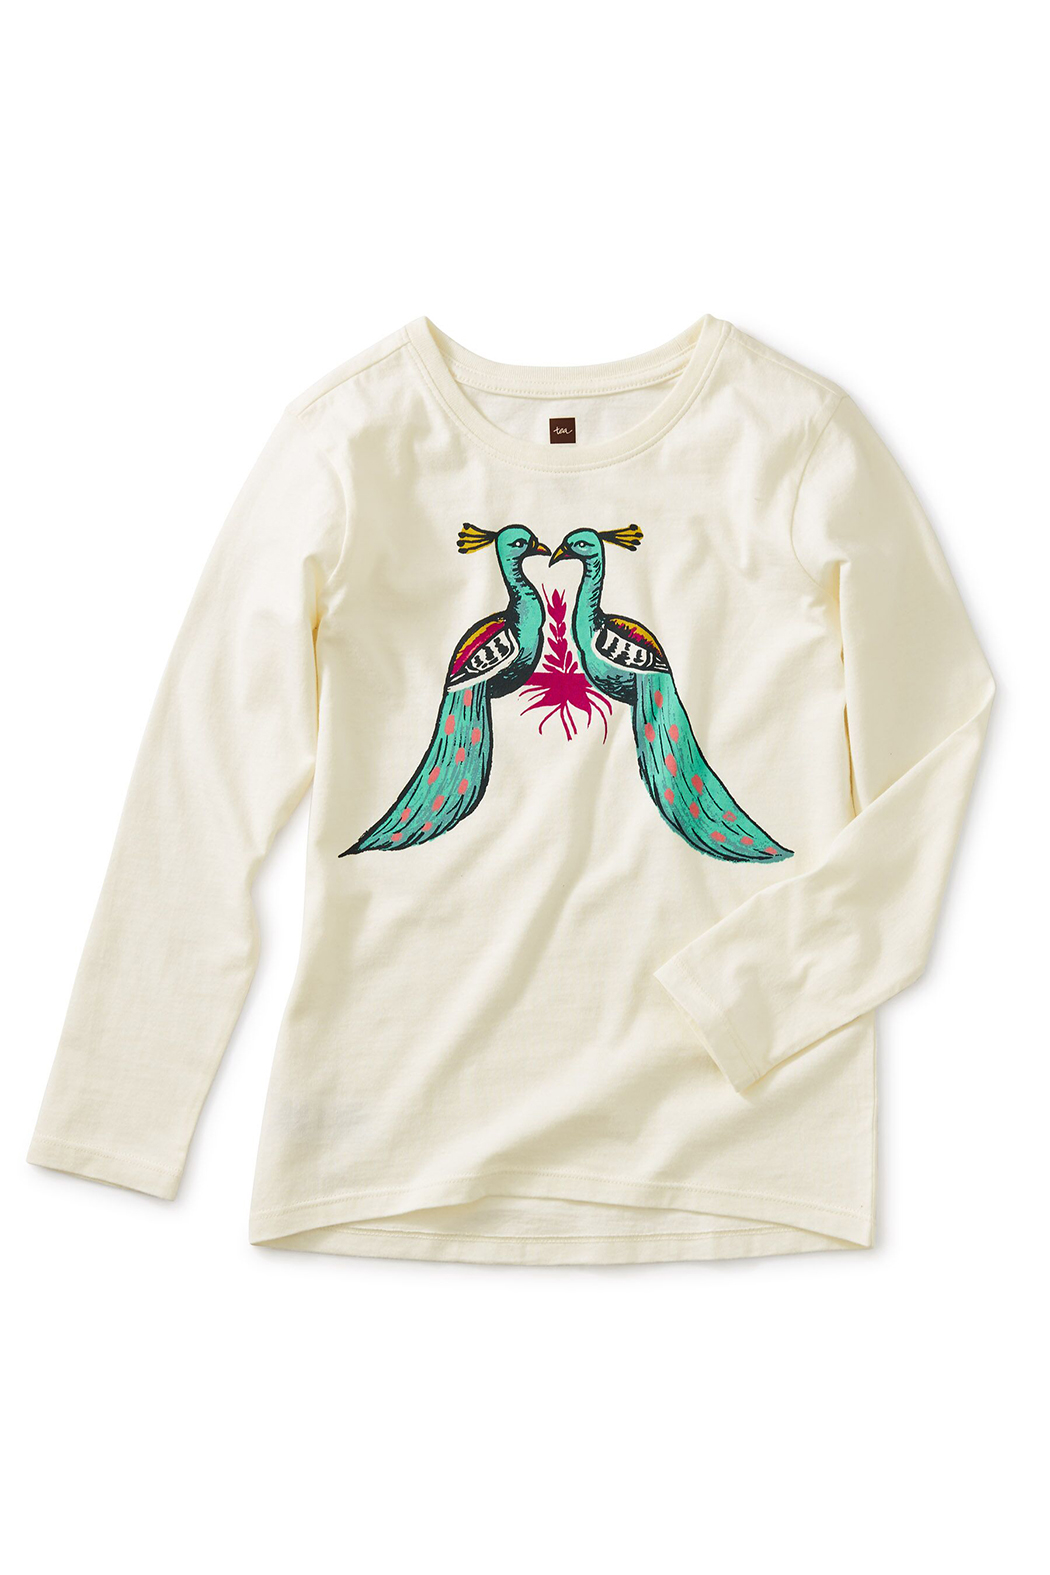 Tea Collection Pair of Peacocks Graphic Tee - Main Image